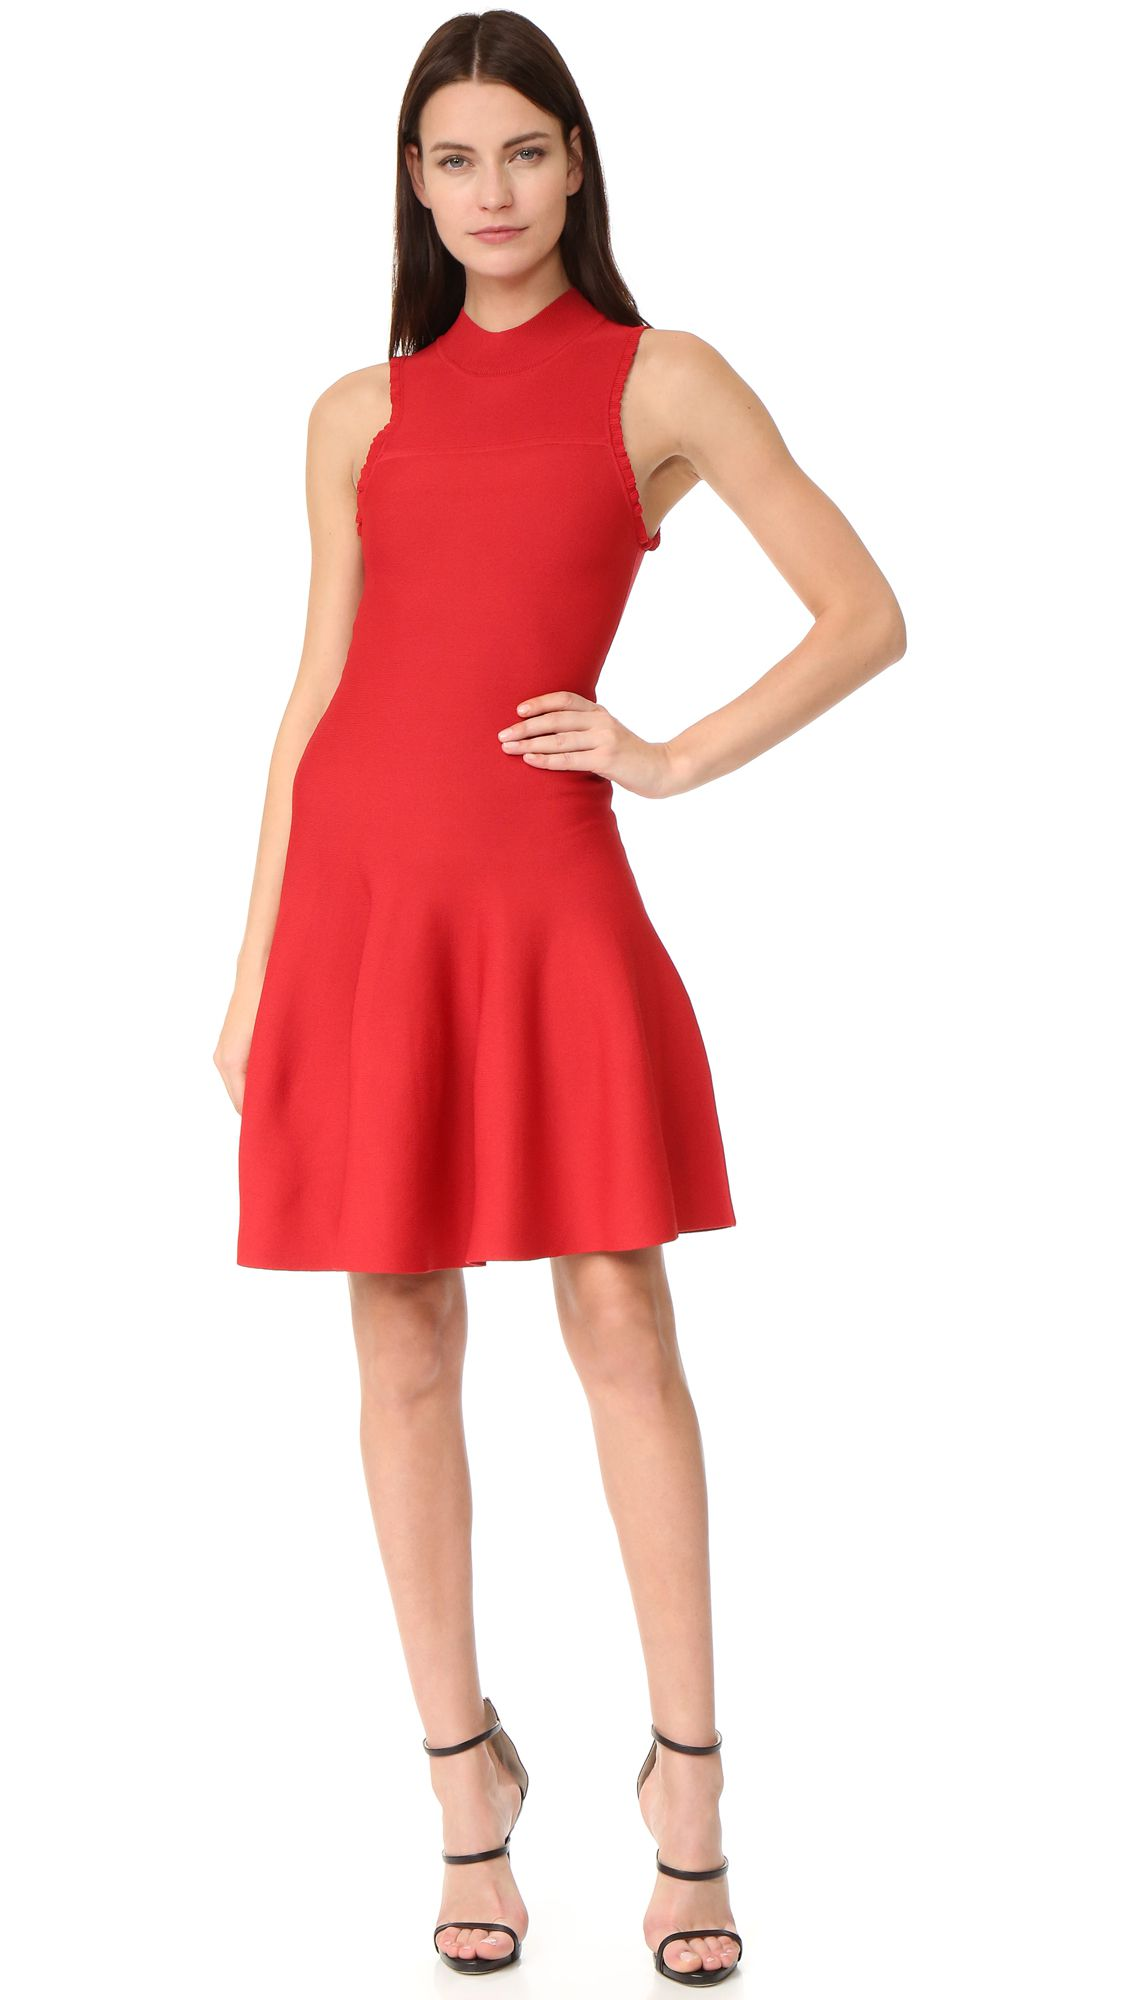 A red flared dress